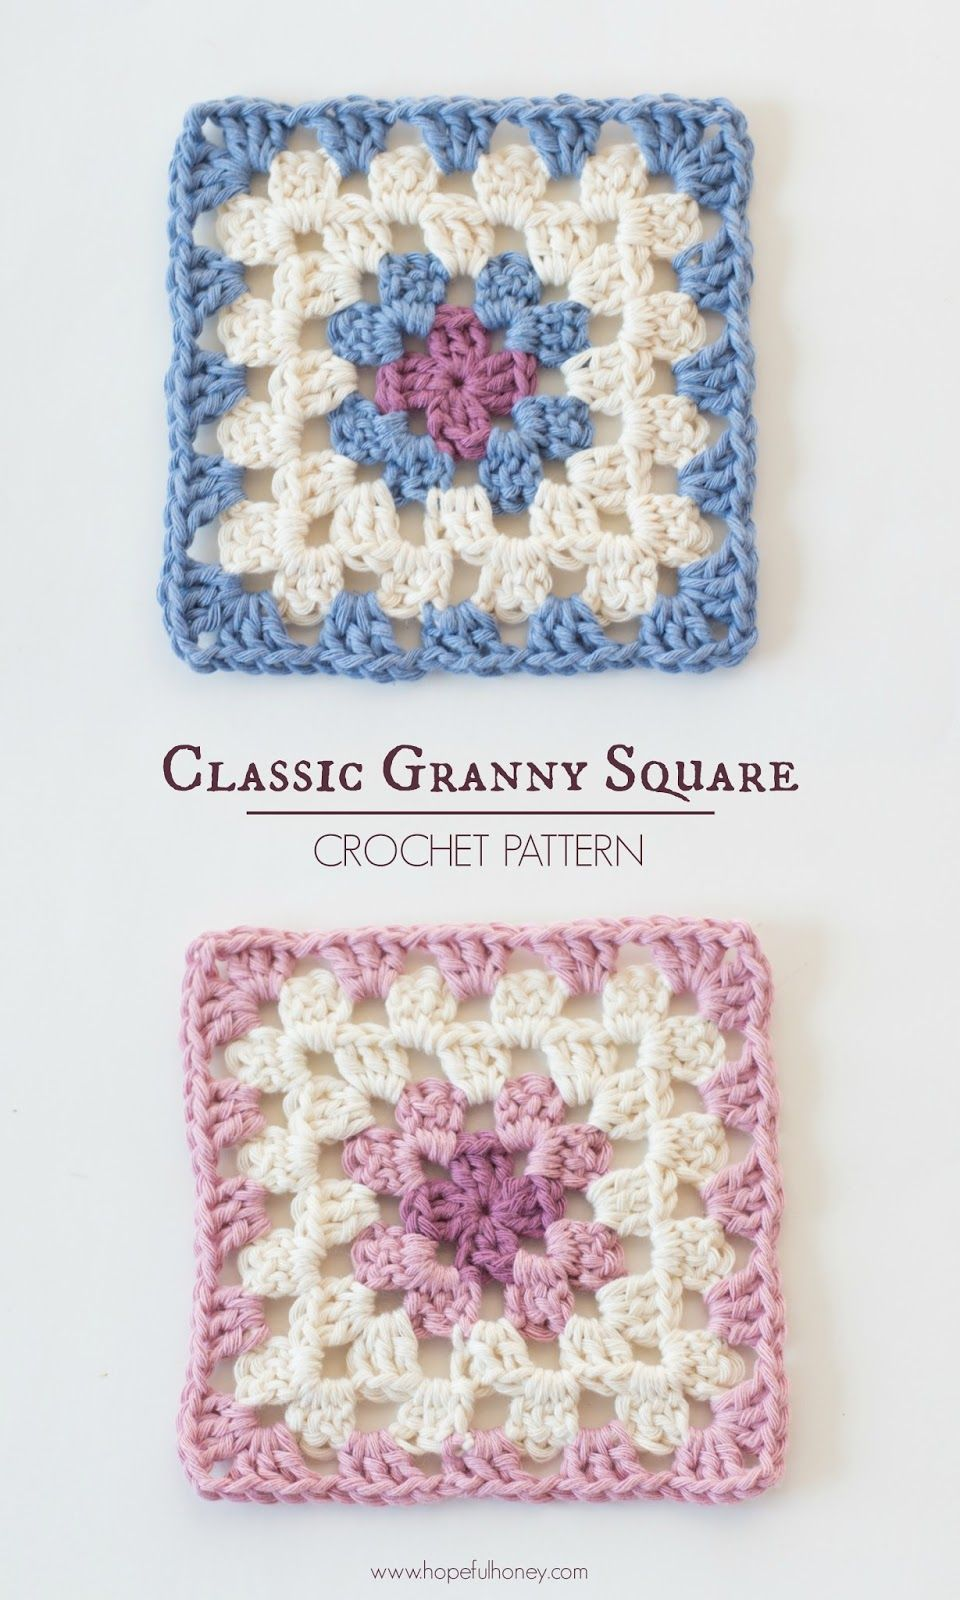 Classic Granny Square - Free Crochet Pattern | CRAFTS - Crochet ...